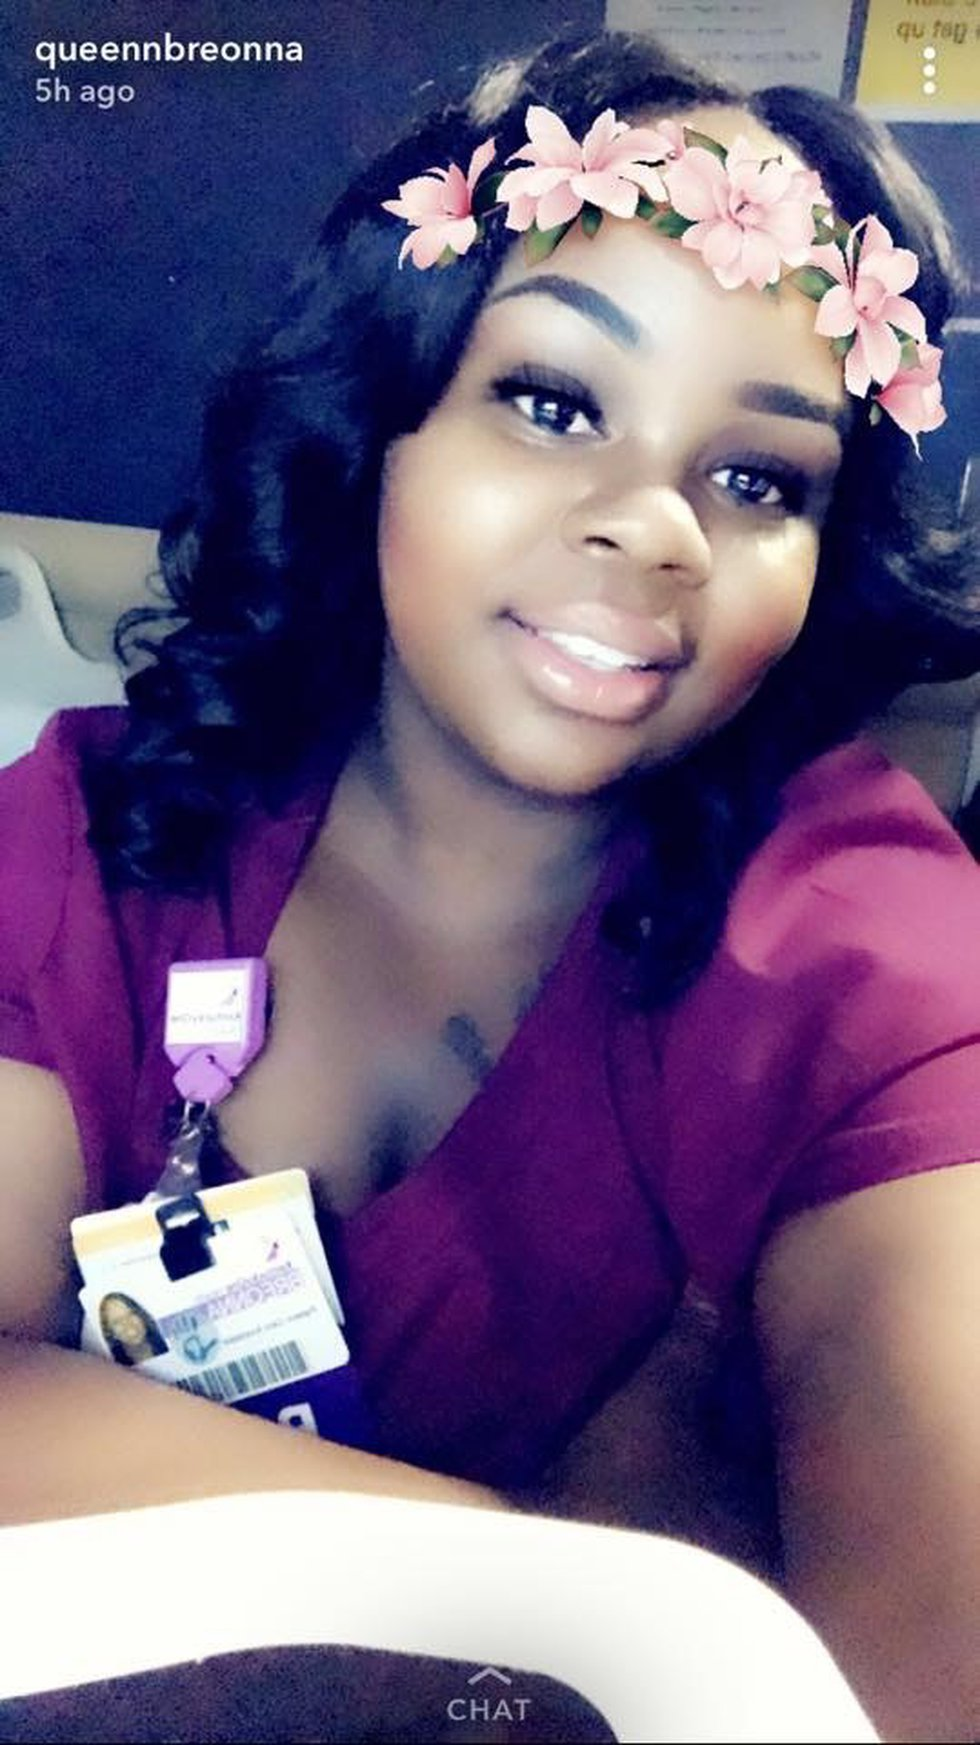 Breonna Taylor was an EMT working at two hospitals when she was shot and killed in March.